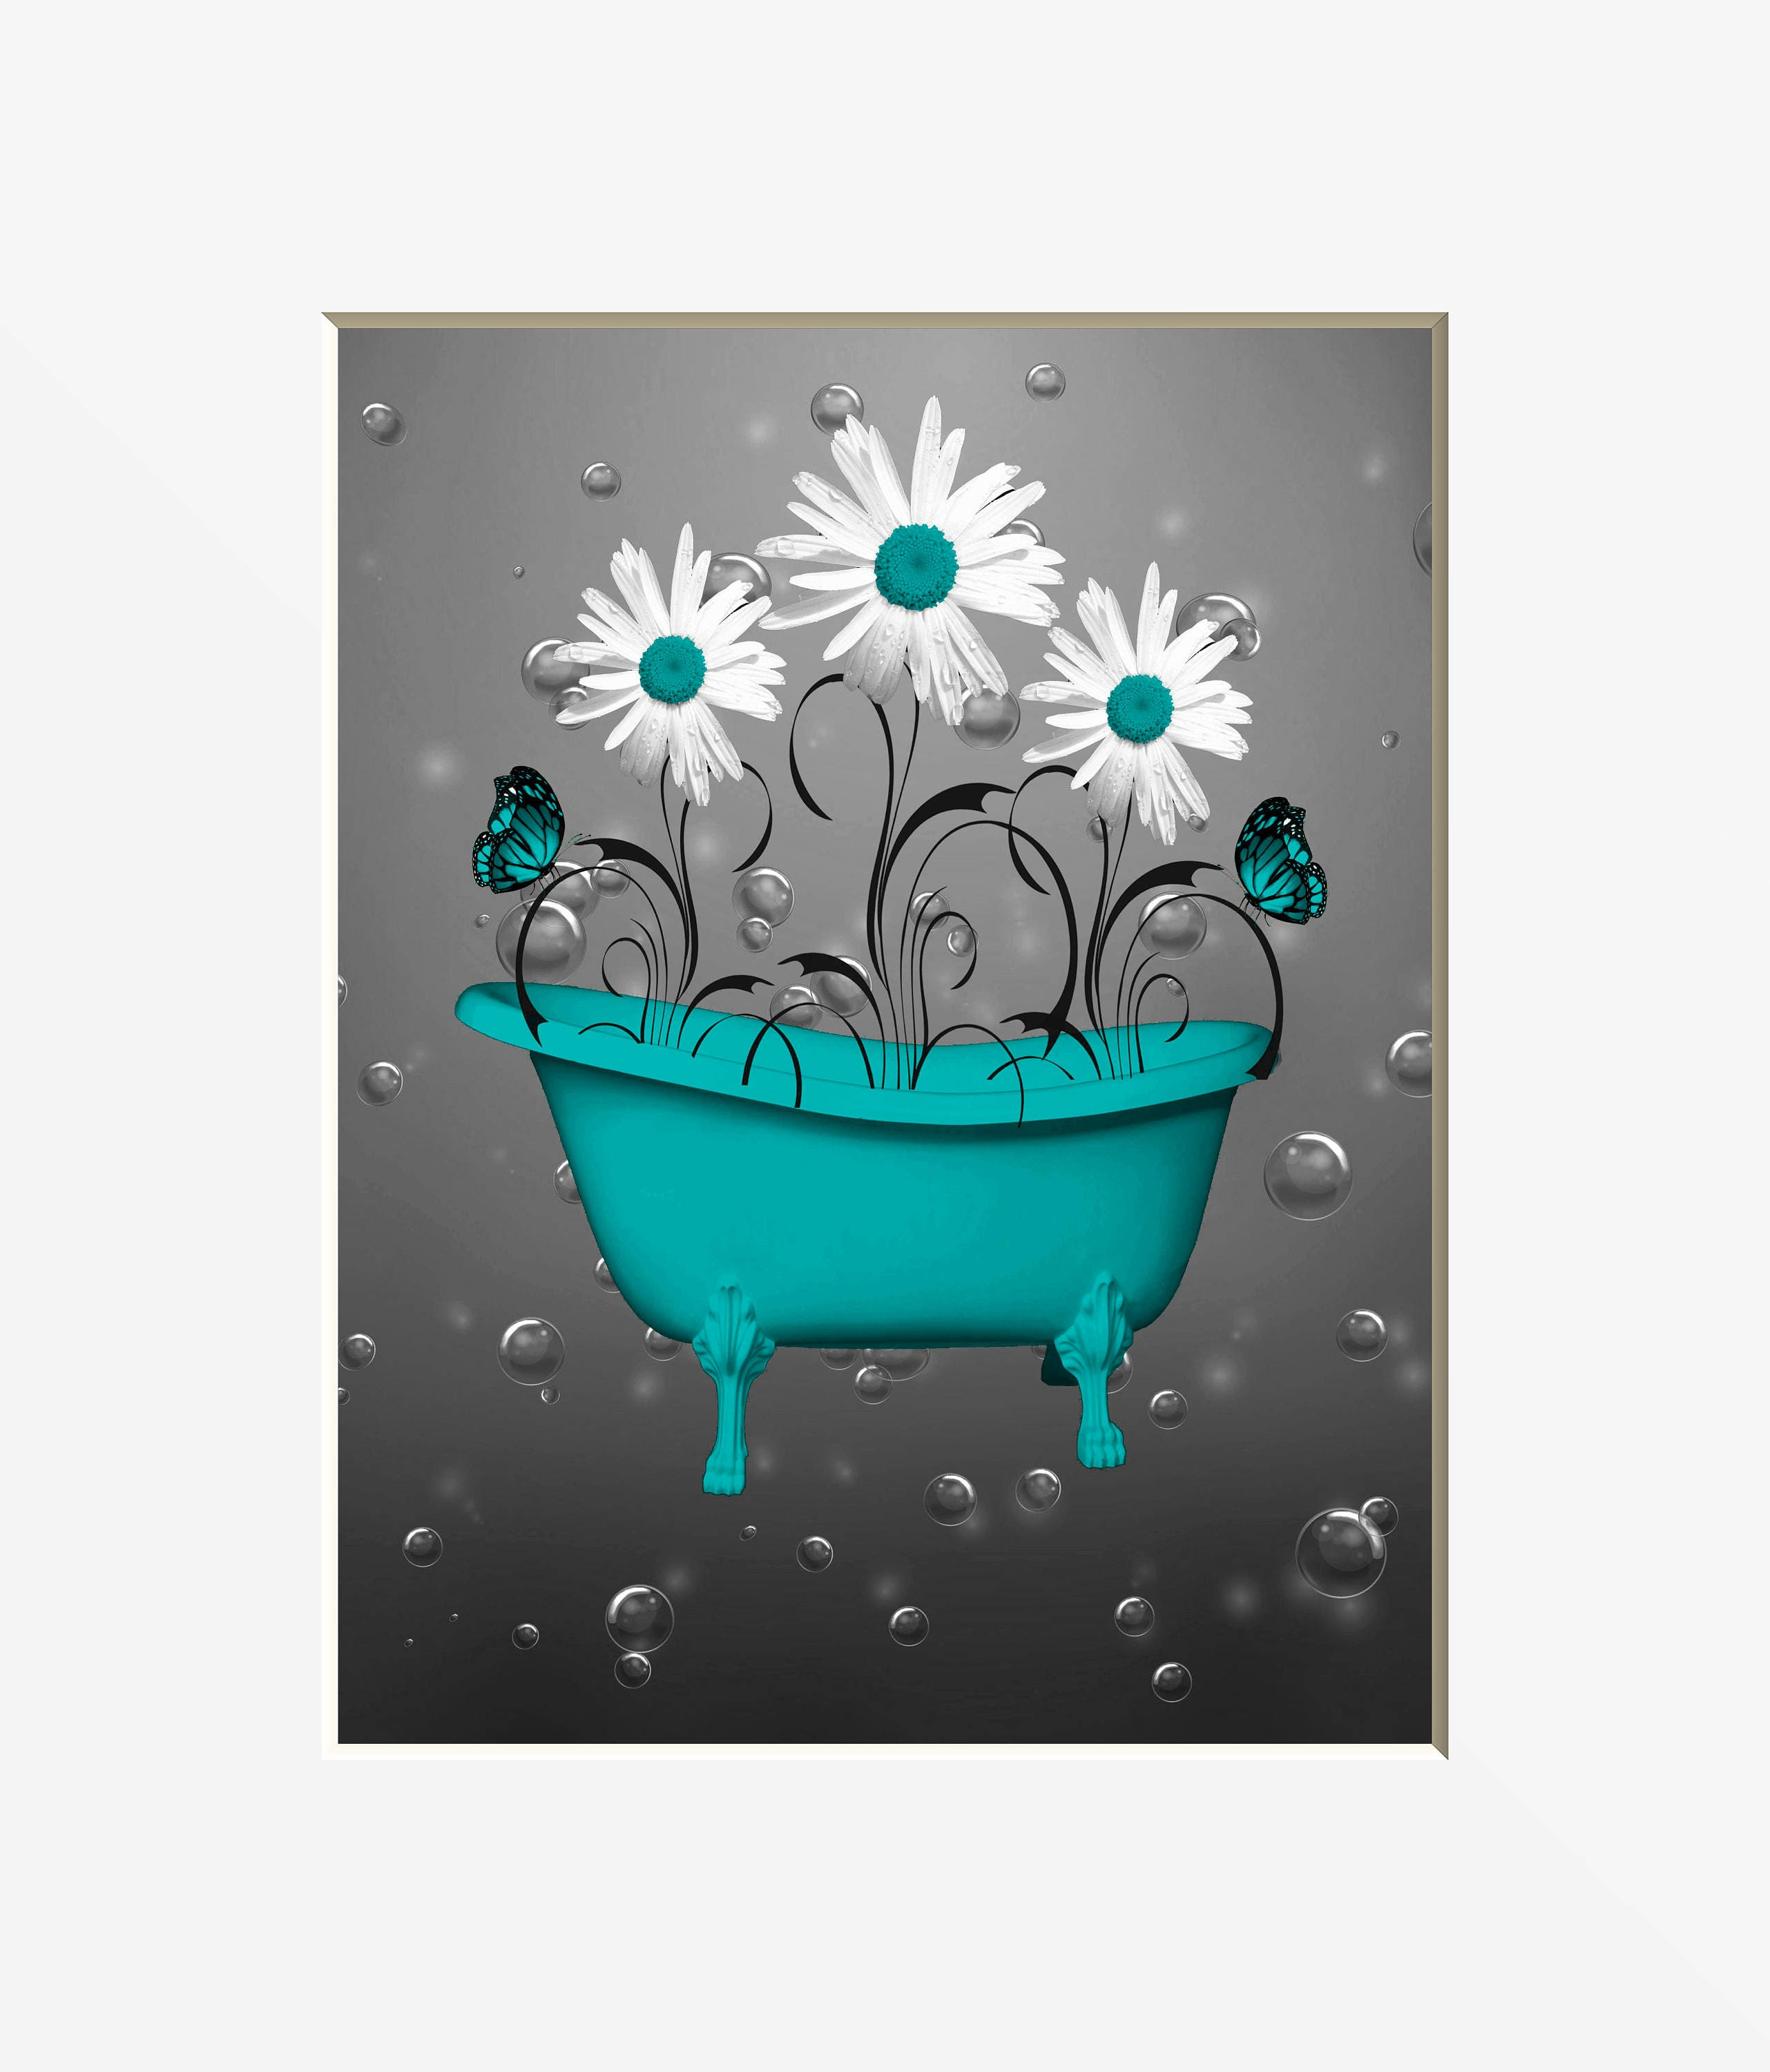 Teal Gray Wall Pictures Teal Bathroom Decor Teal Daisy